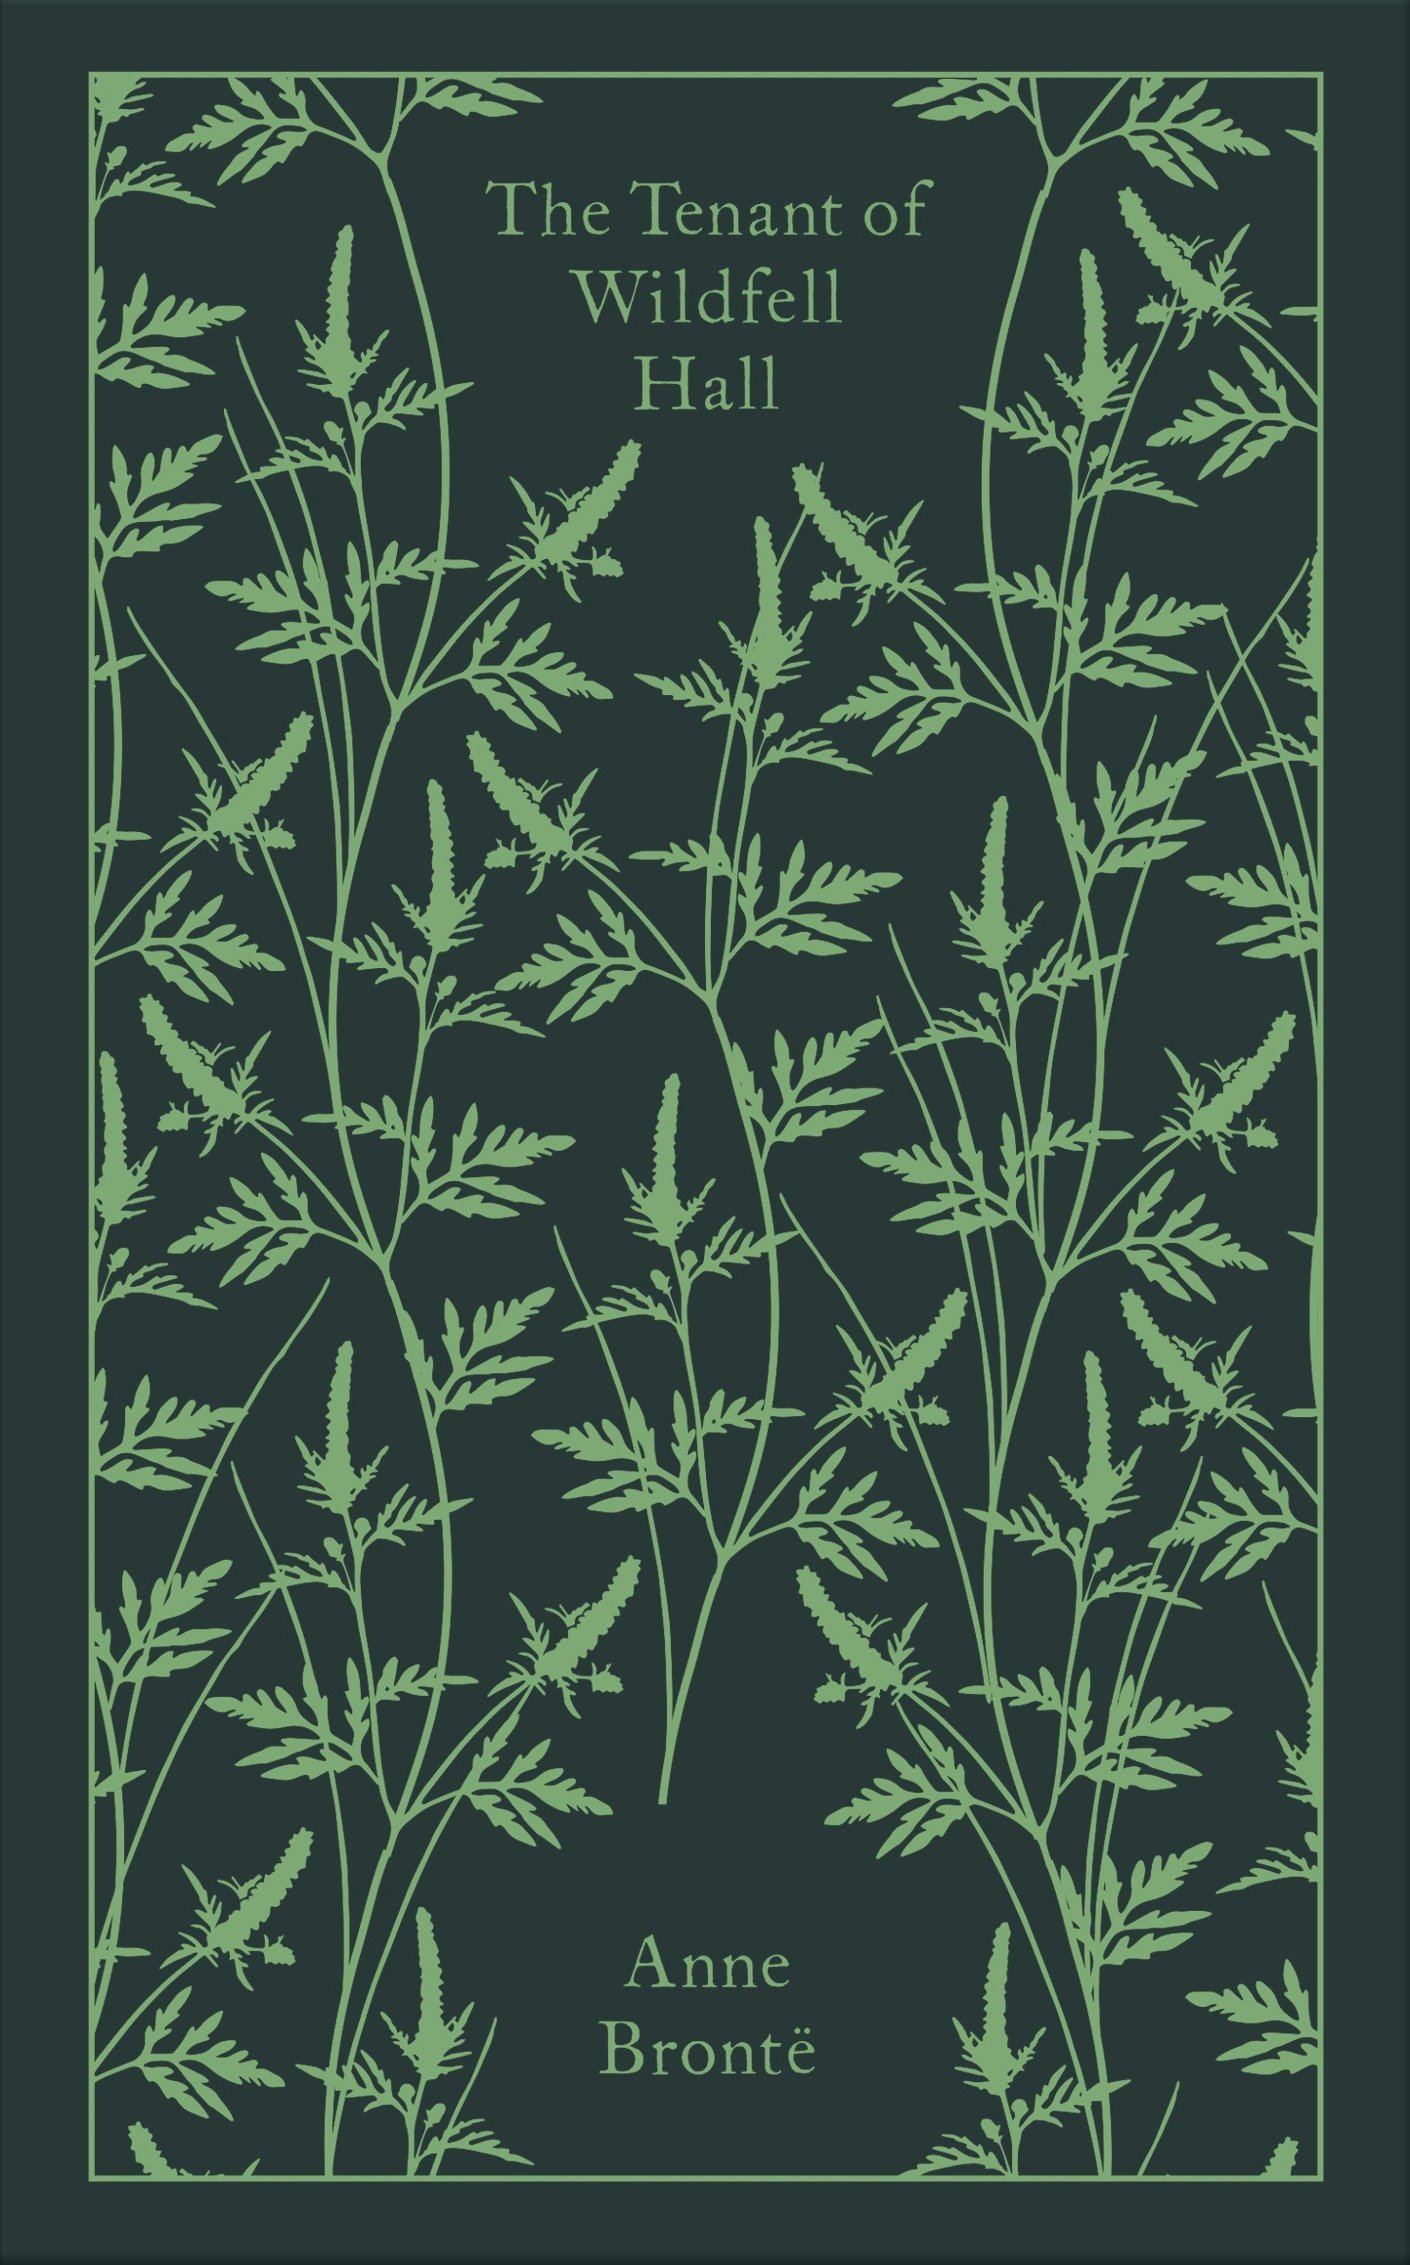 The Tenant of Wildfell Hall (Penguin Clothbound Classics) PDF